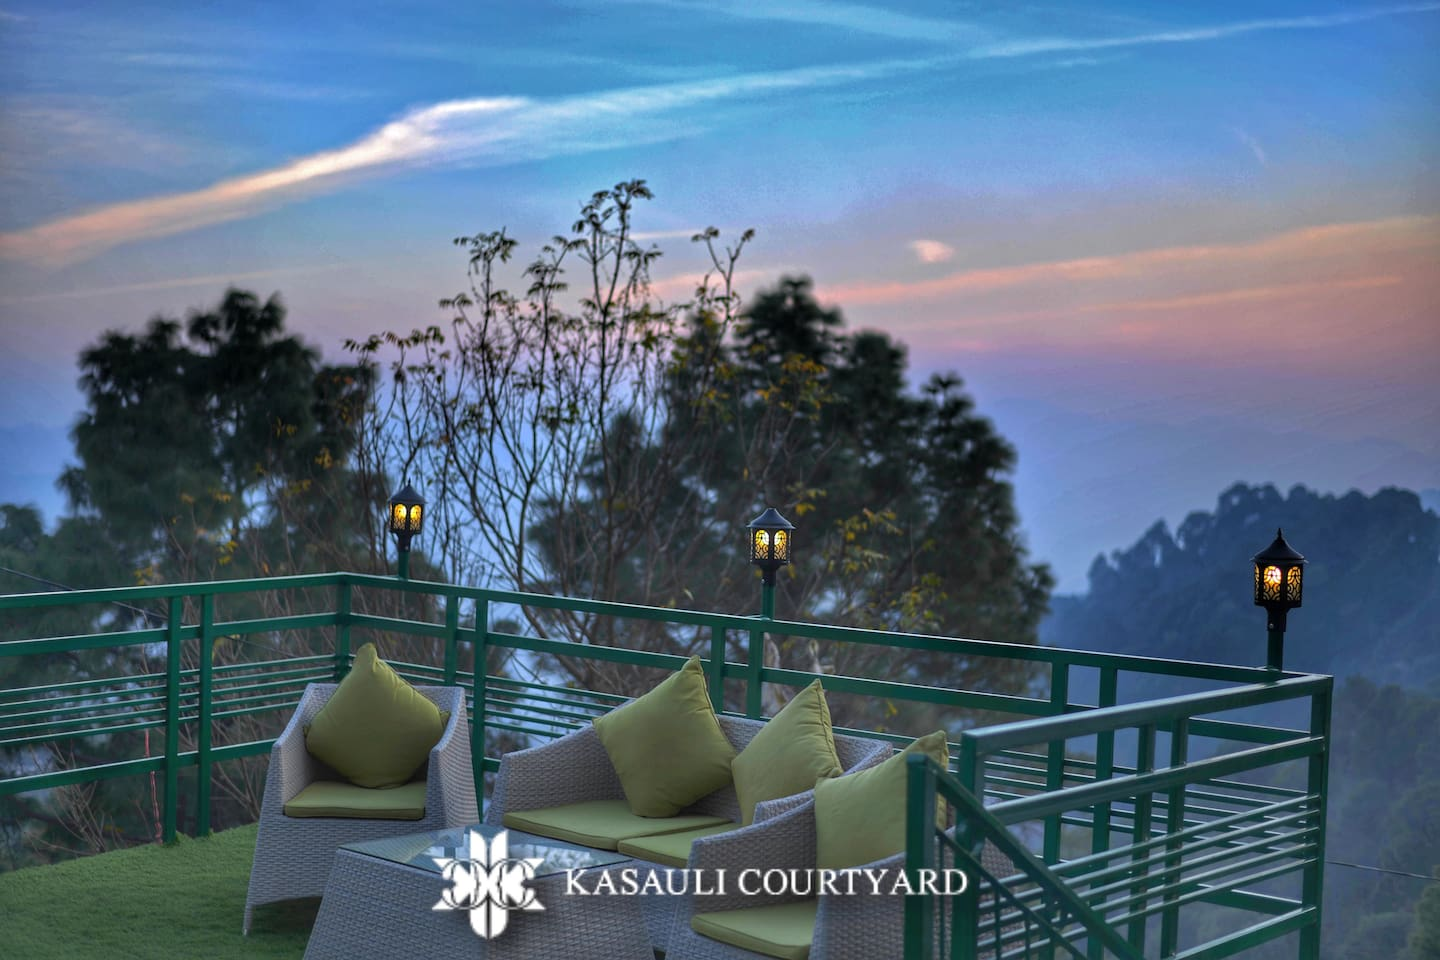 Kasauli Courtyard's terrace offers mesmerizing view of the valley. Gaze into the sky and enjoy your evening cup of coffee in the serene environment.